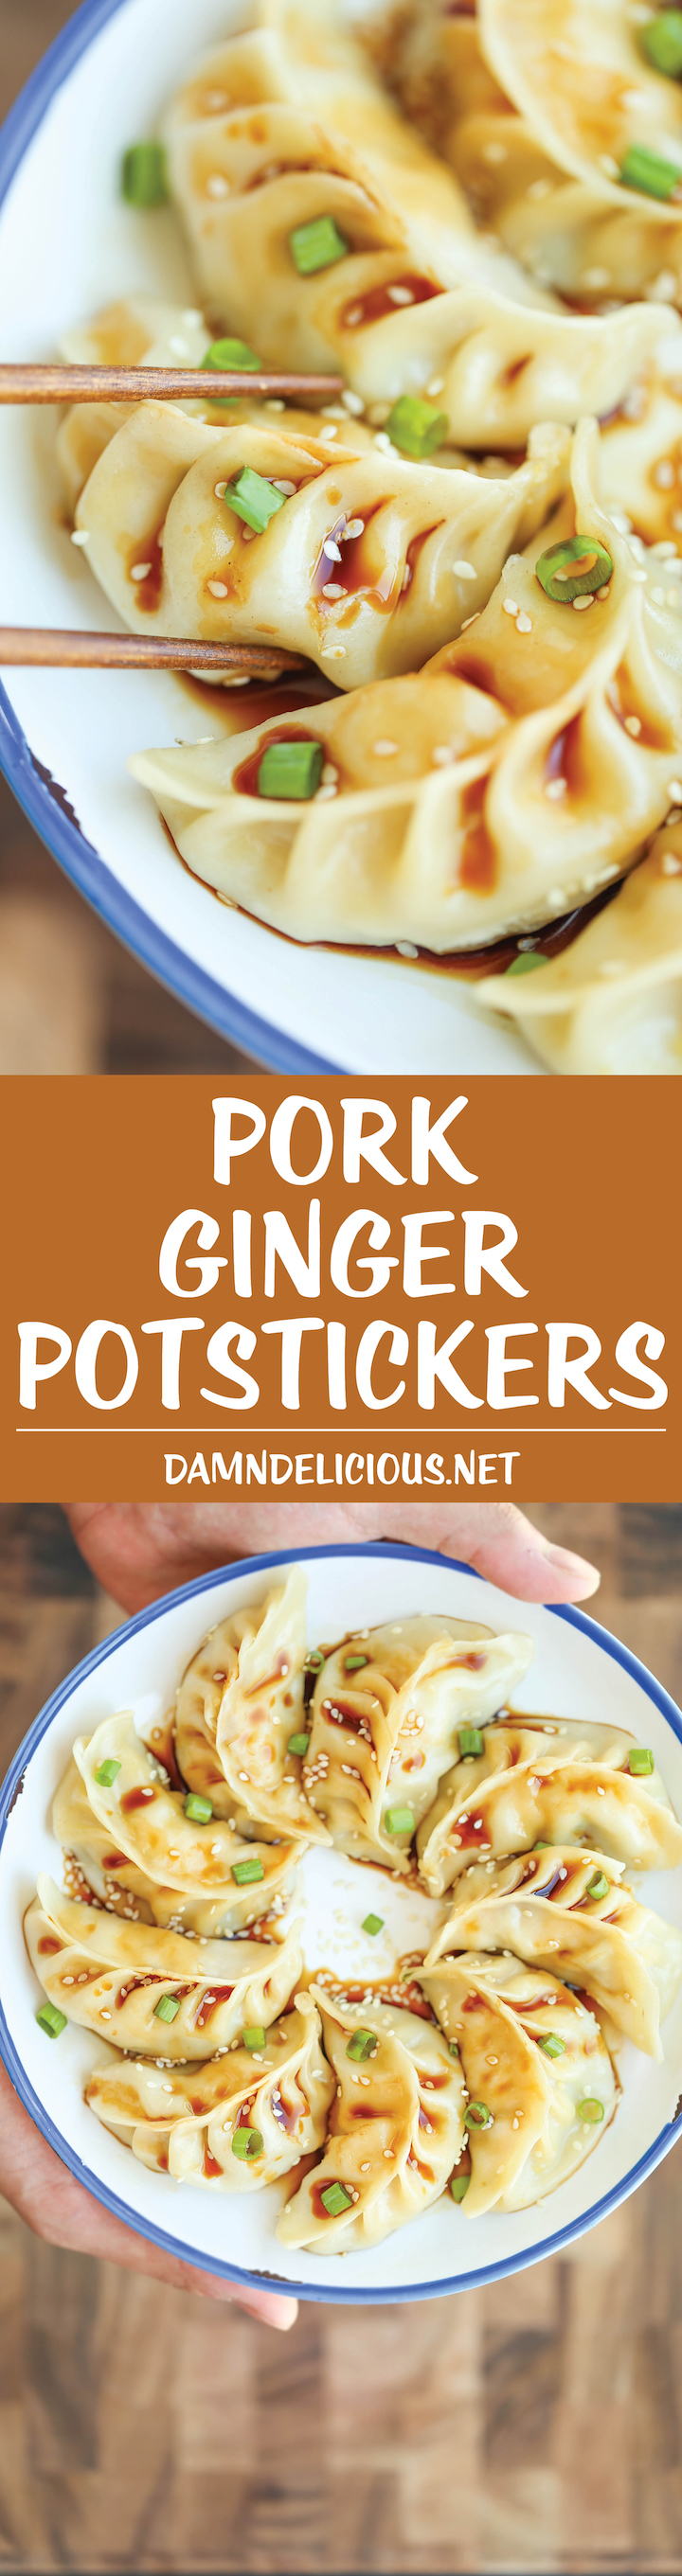 Pork Ginger Potstickers - Super easy, freezer-friendly potstickers made completely from scratch. So hearty AND healthier than take-out!